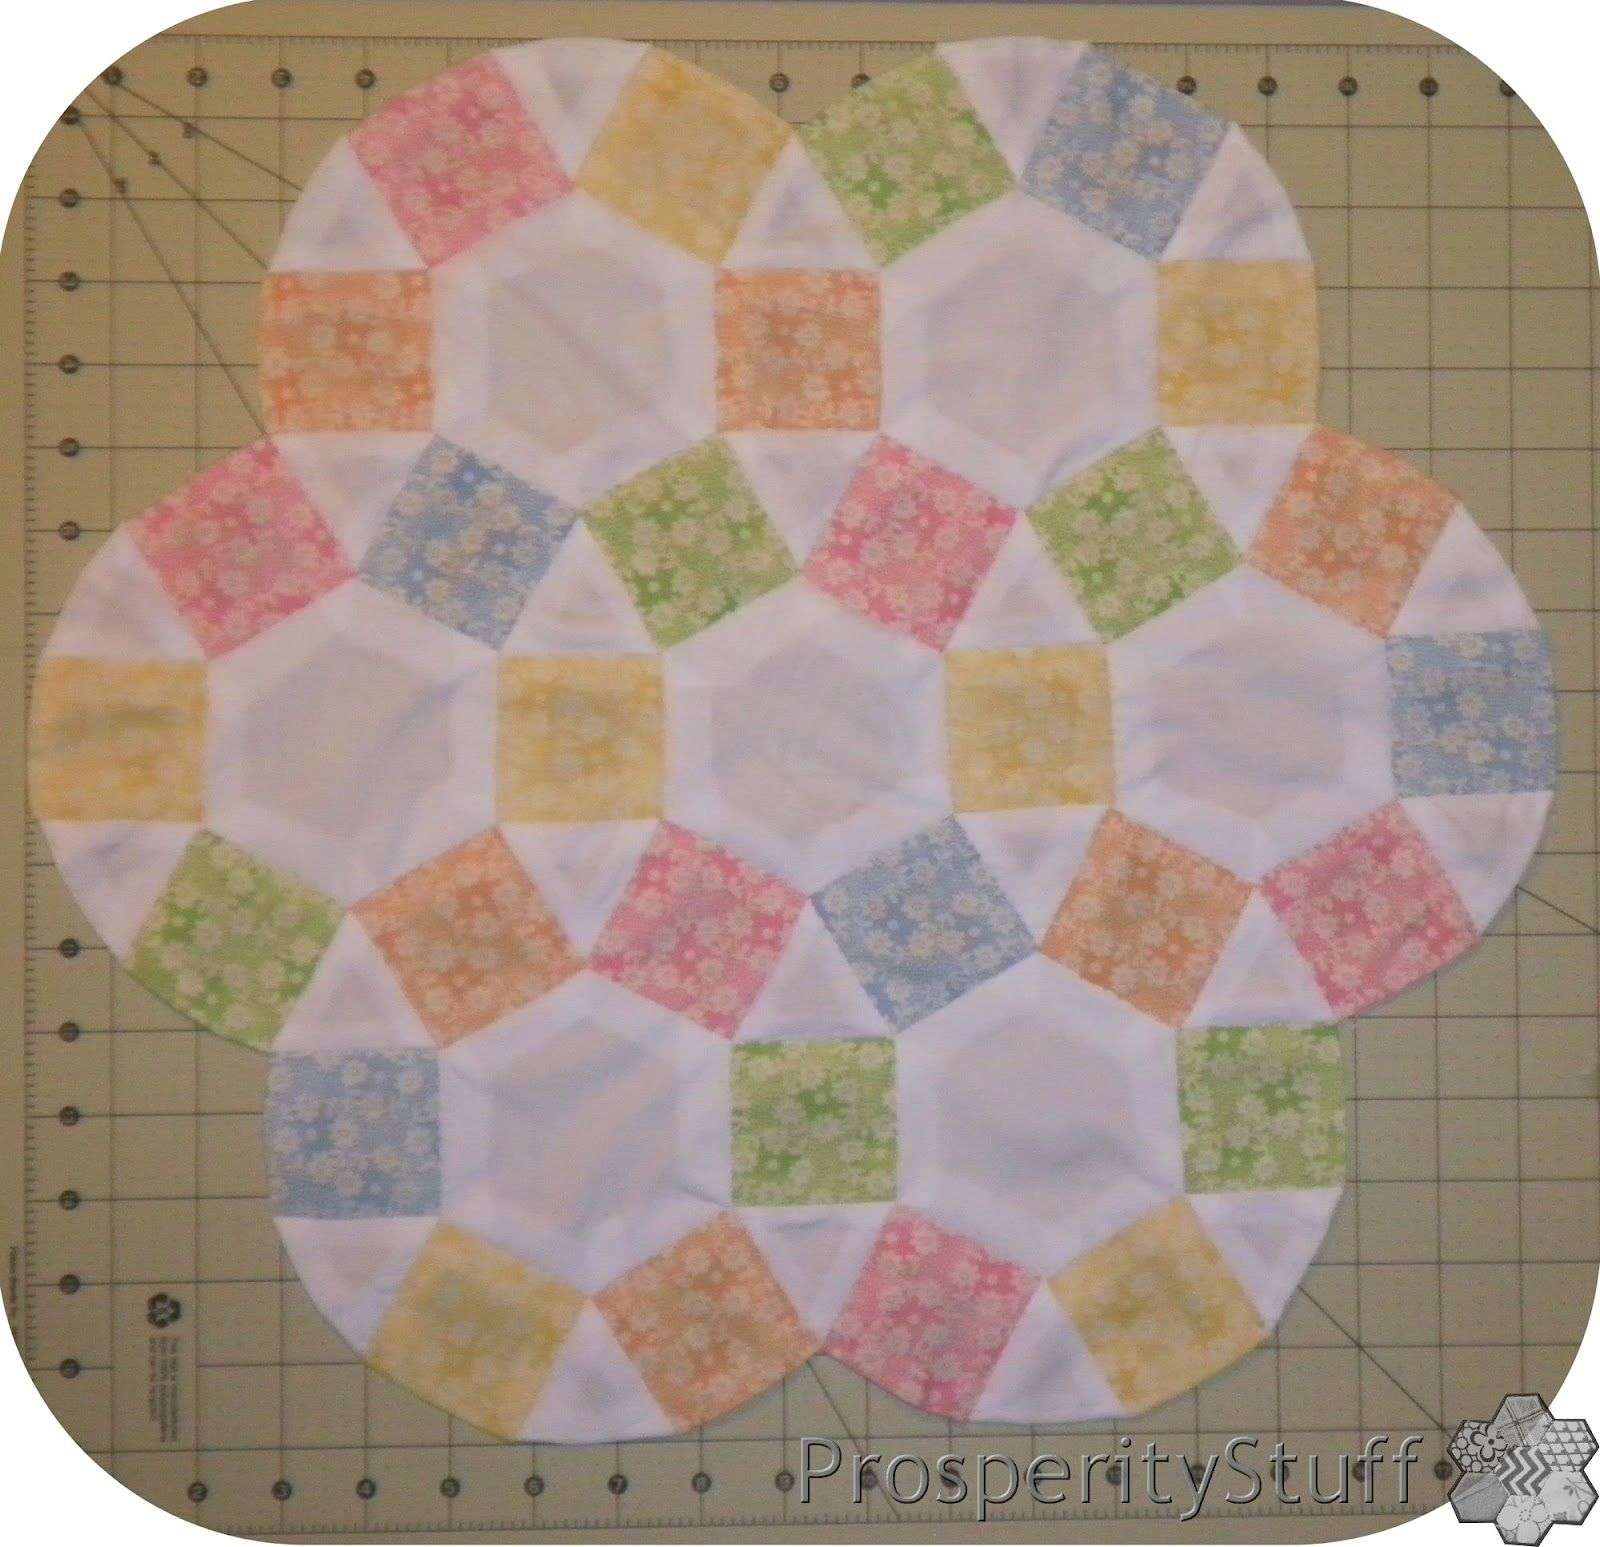 Prosperitystuff Quilts Round English Paper Piecing Sort